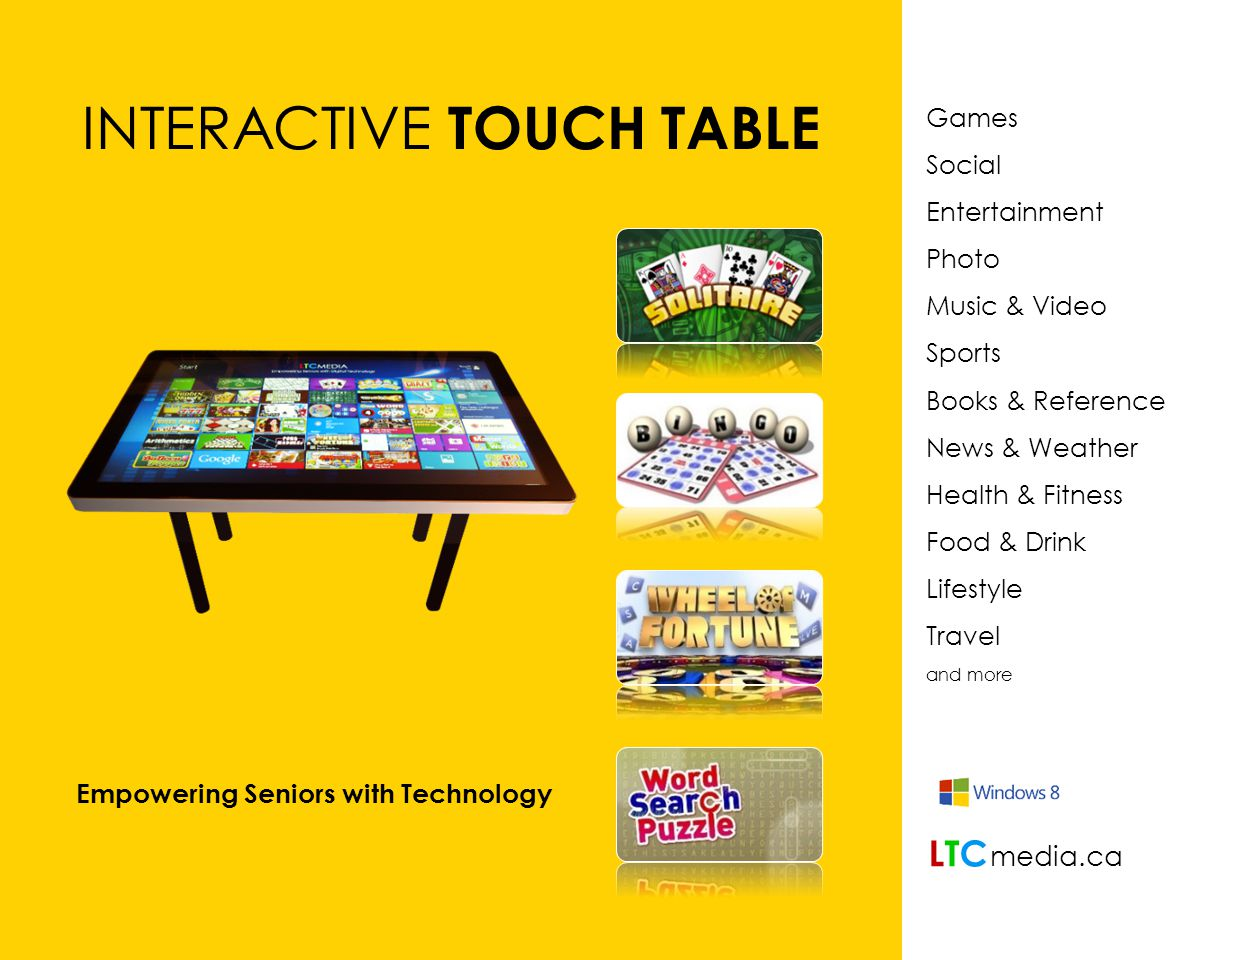 Games Social Entertainment Photo Music & Video Sports Books & Reference News & Weather Health & Fitness Food & Drink Lifestyle Travel and more INTERACTIVE TOUCH TABLE Empowering Seniors with Technology LTCLTC media.ca